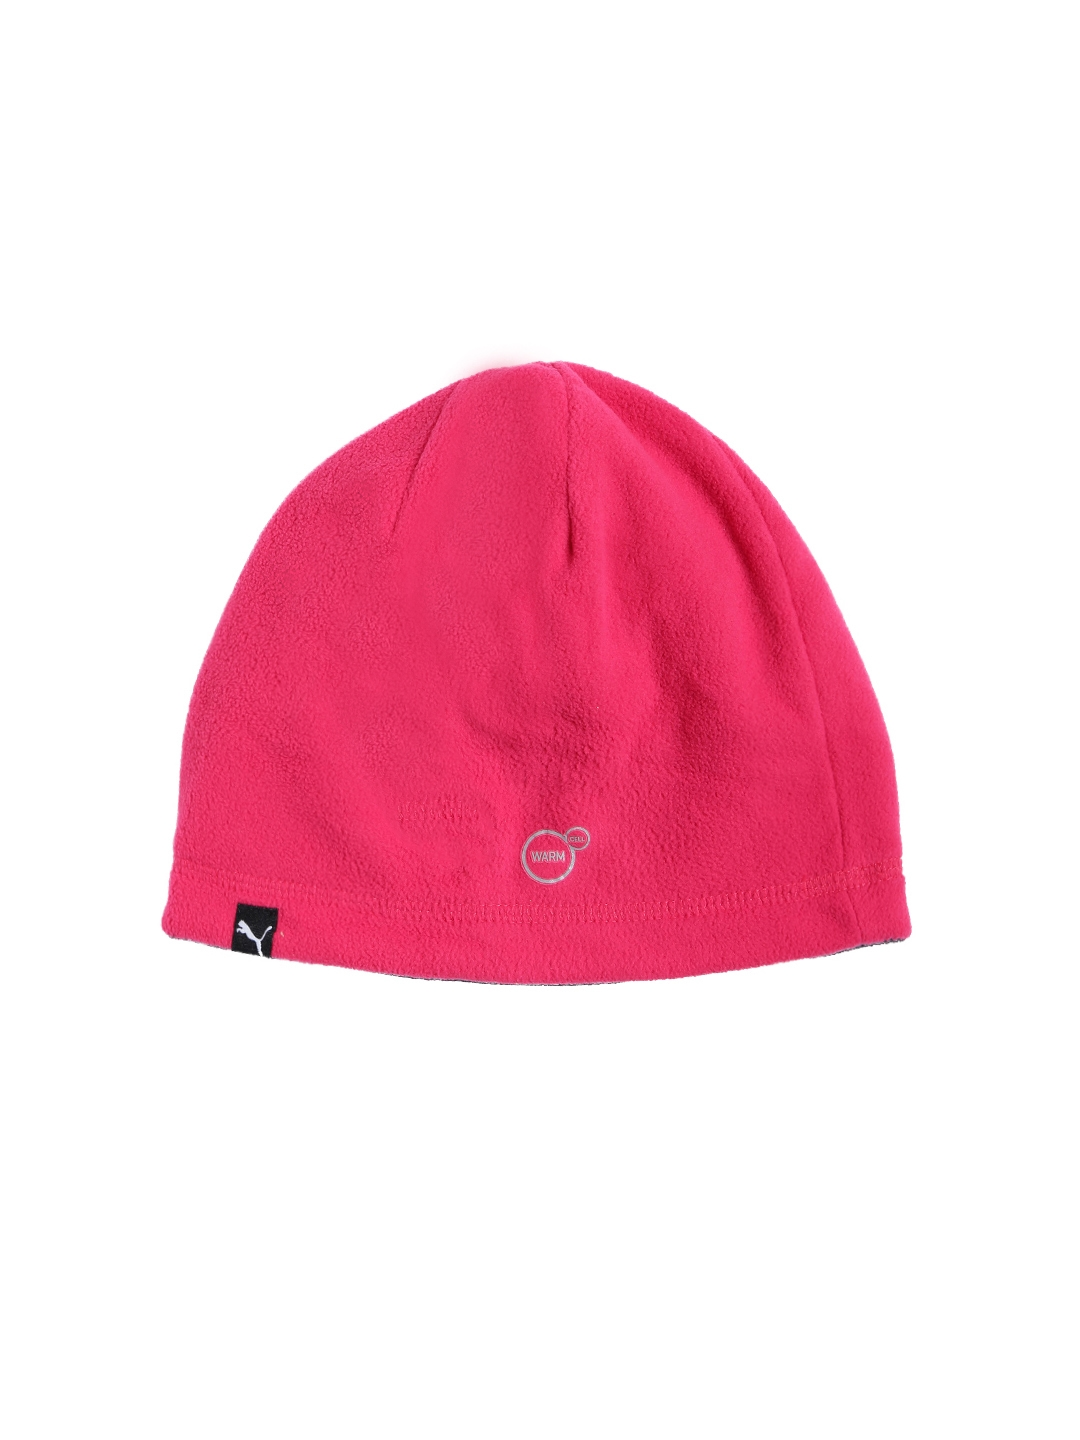 27bed048 Buy Puma Unisex Pink Solid ACTIVE Fleece Beanie - Caps for Unisex ...